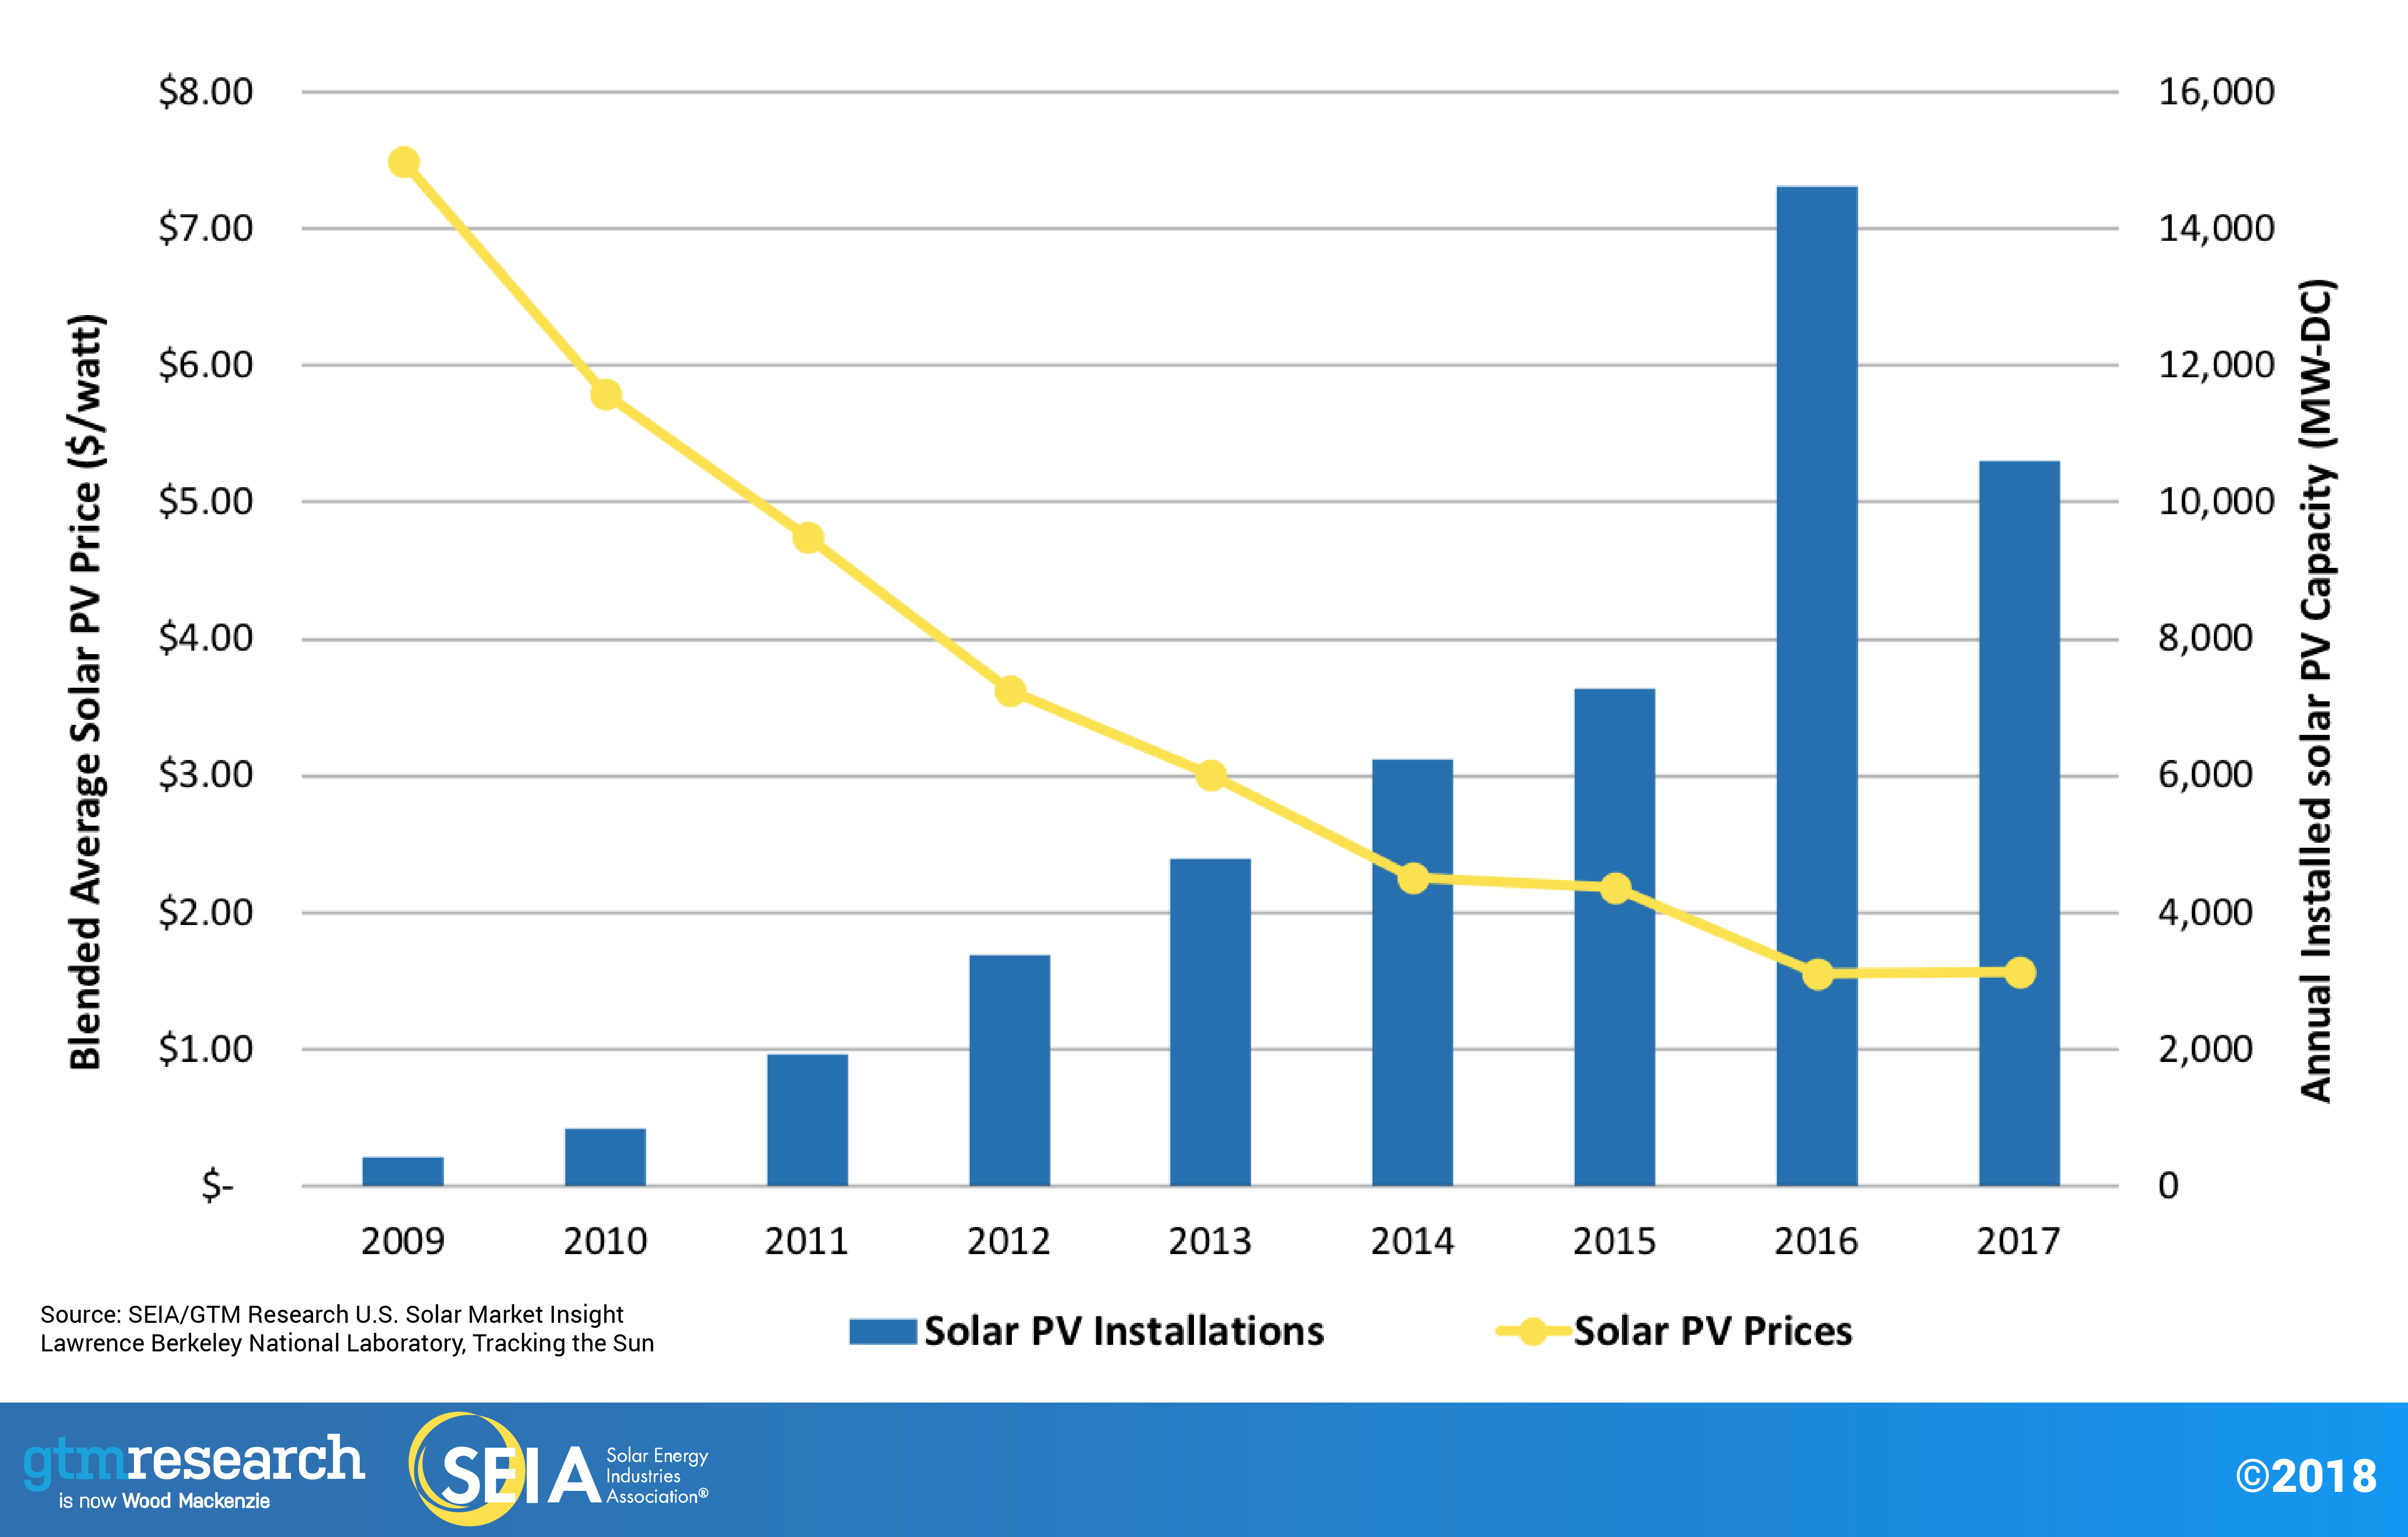 Photovoltaic Solar Electric Seia Wiring Diagrams On How Work Panels Cost Declines Over Time